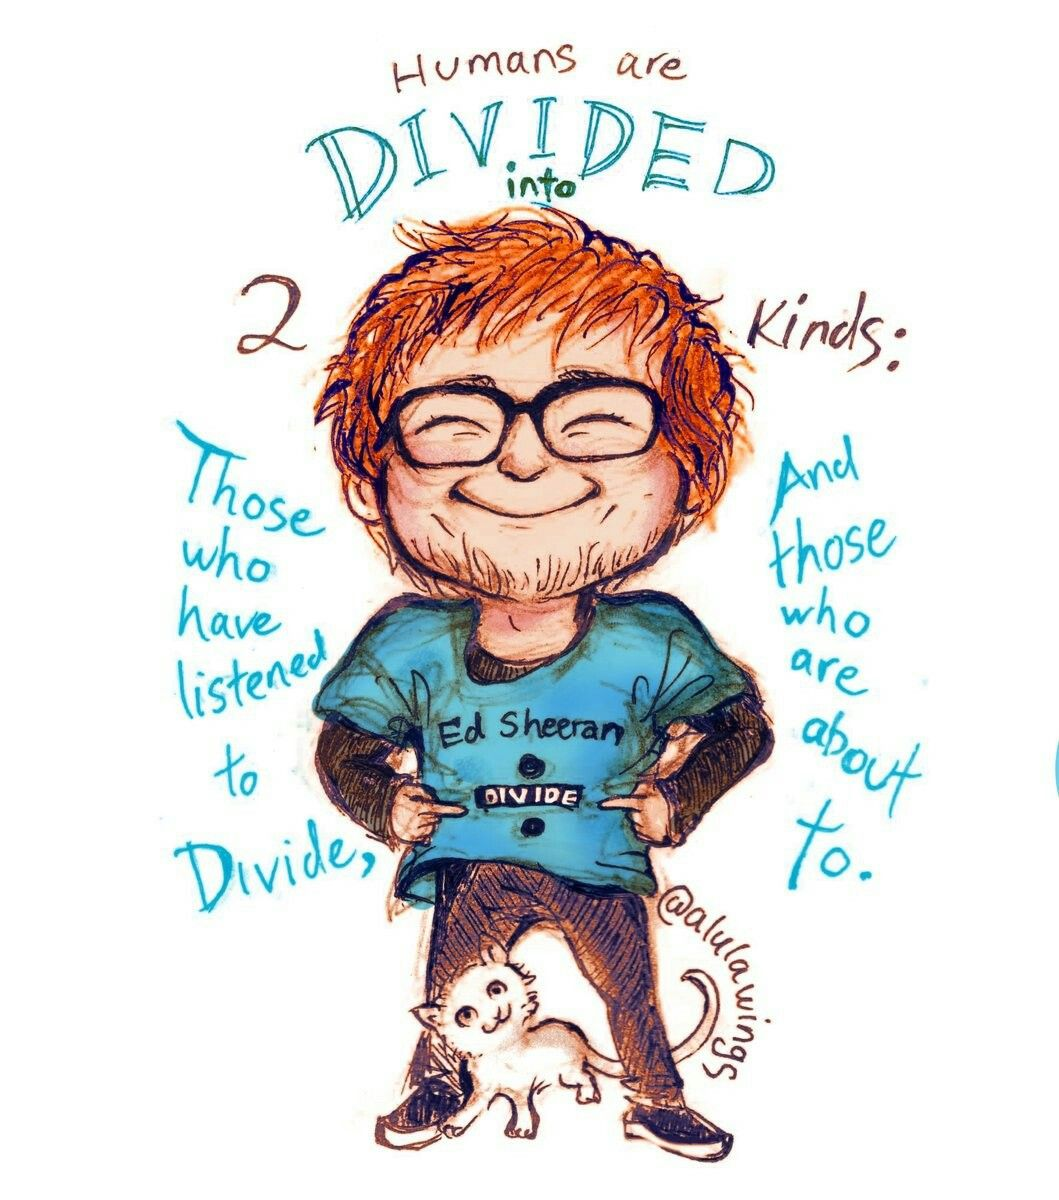 Yup This Is Sooo Adorable Ed Sheeran Love Ed Sheeran Lyrics Ed Sheeran